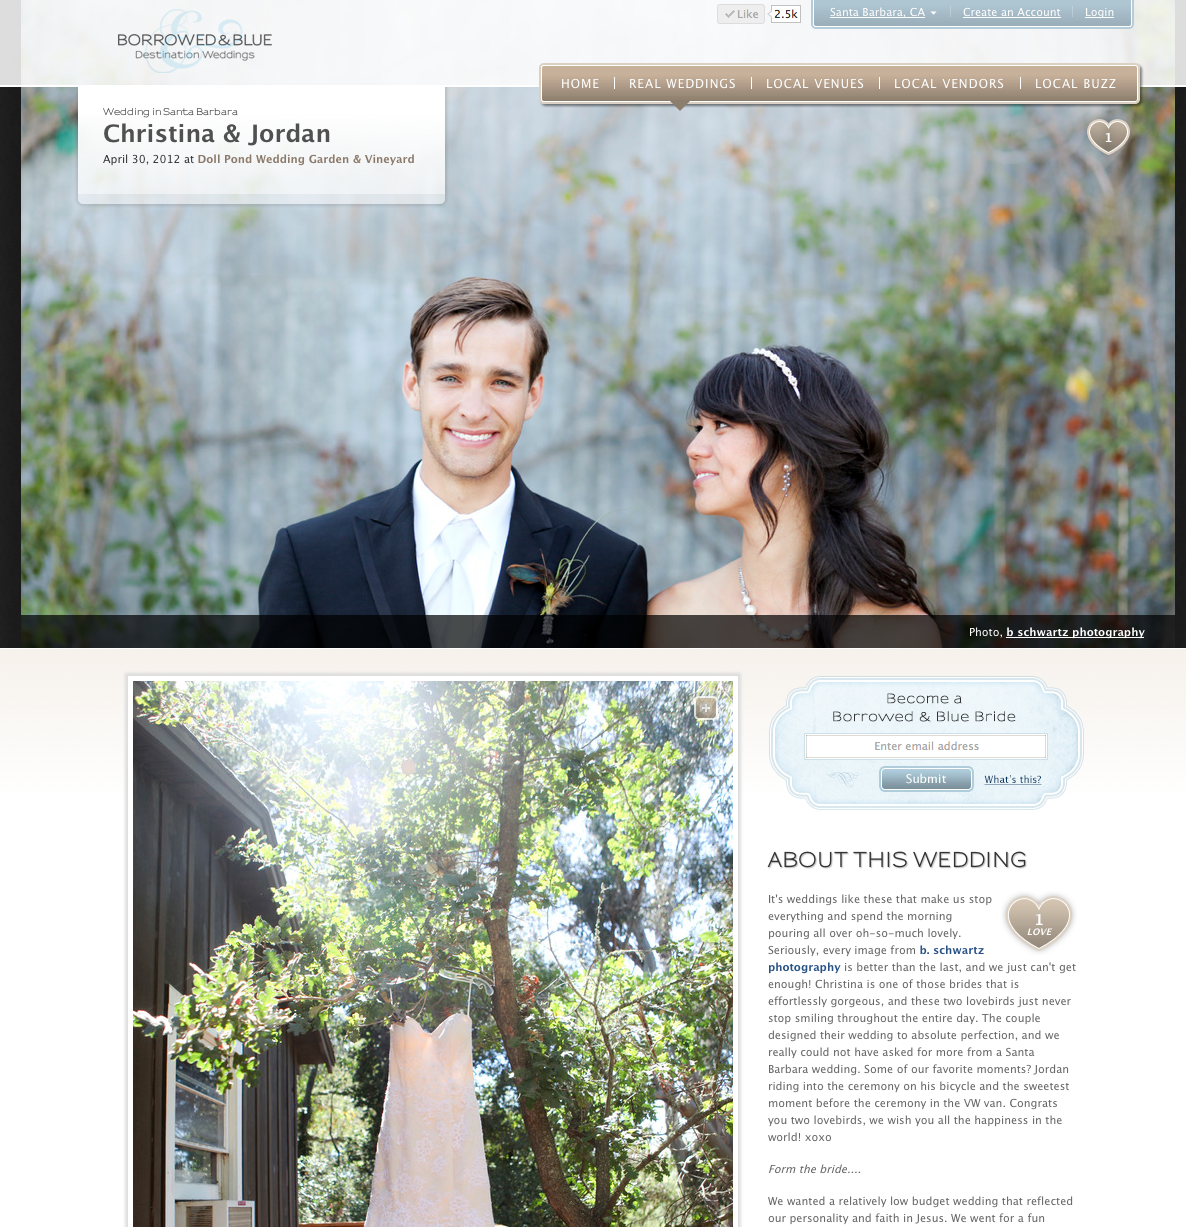 So incredibly thrilled to have Christina and Jordans beautiful wedding featured on Borrowed & Blue today! Check it out! http://www.borrowedandblue.com/santa-barbara/weddings/christina-jordan